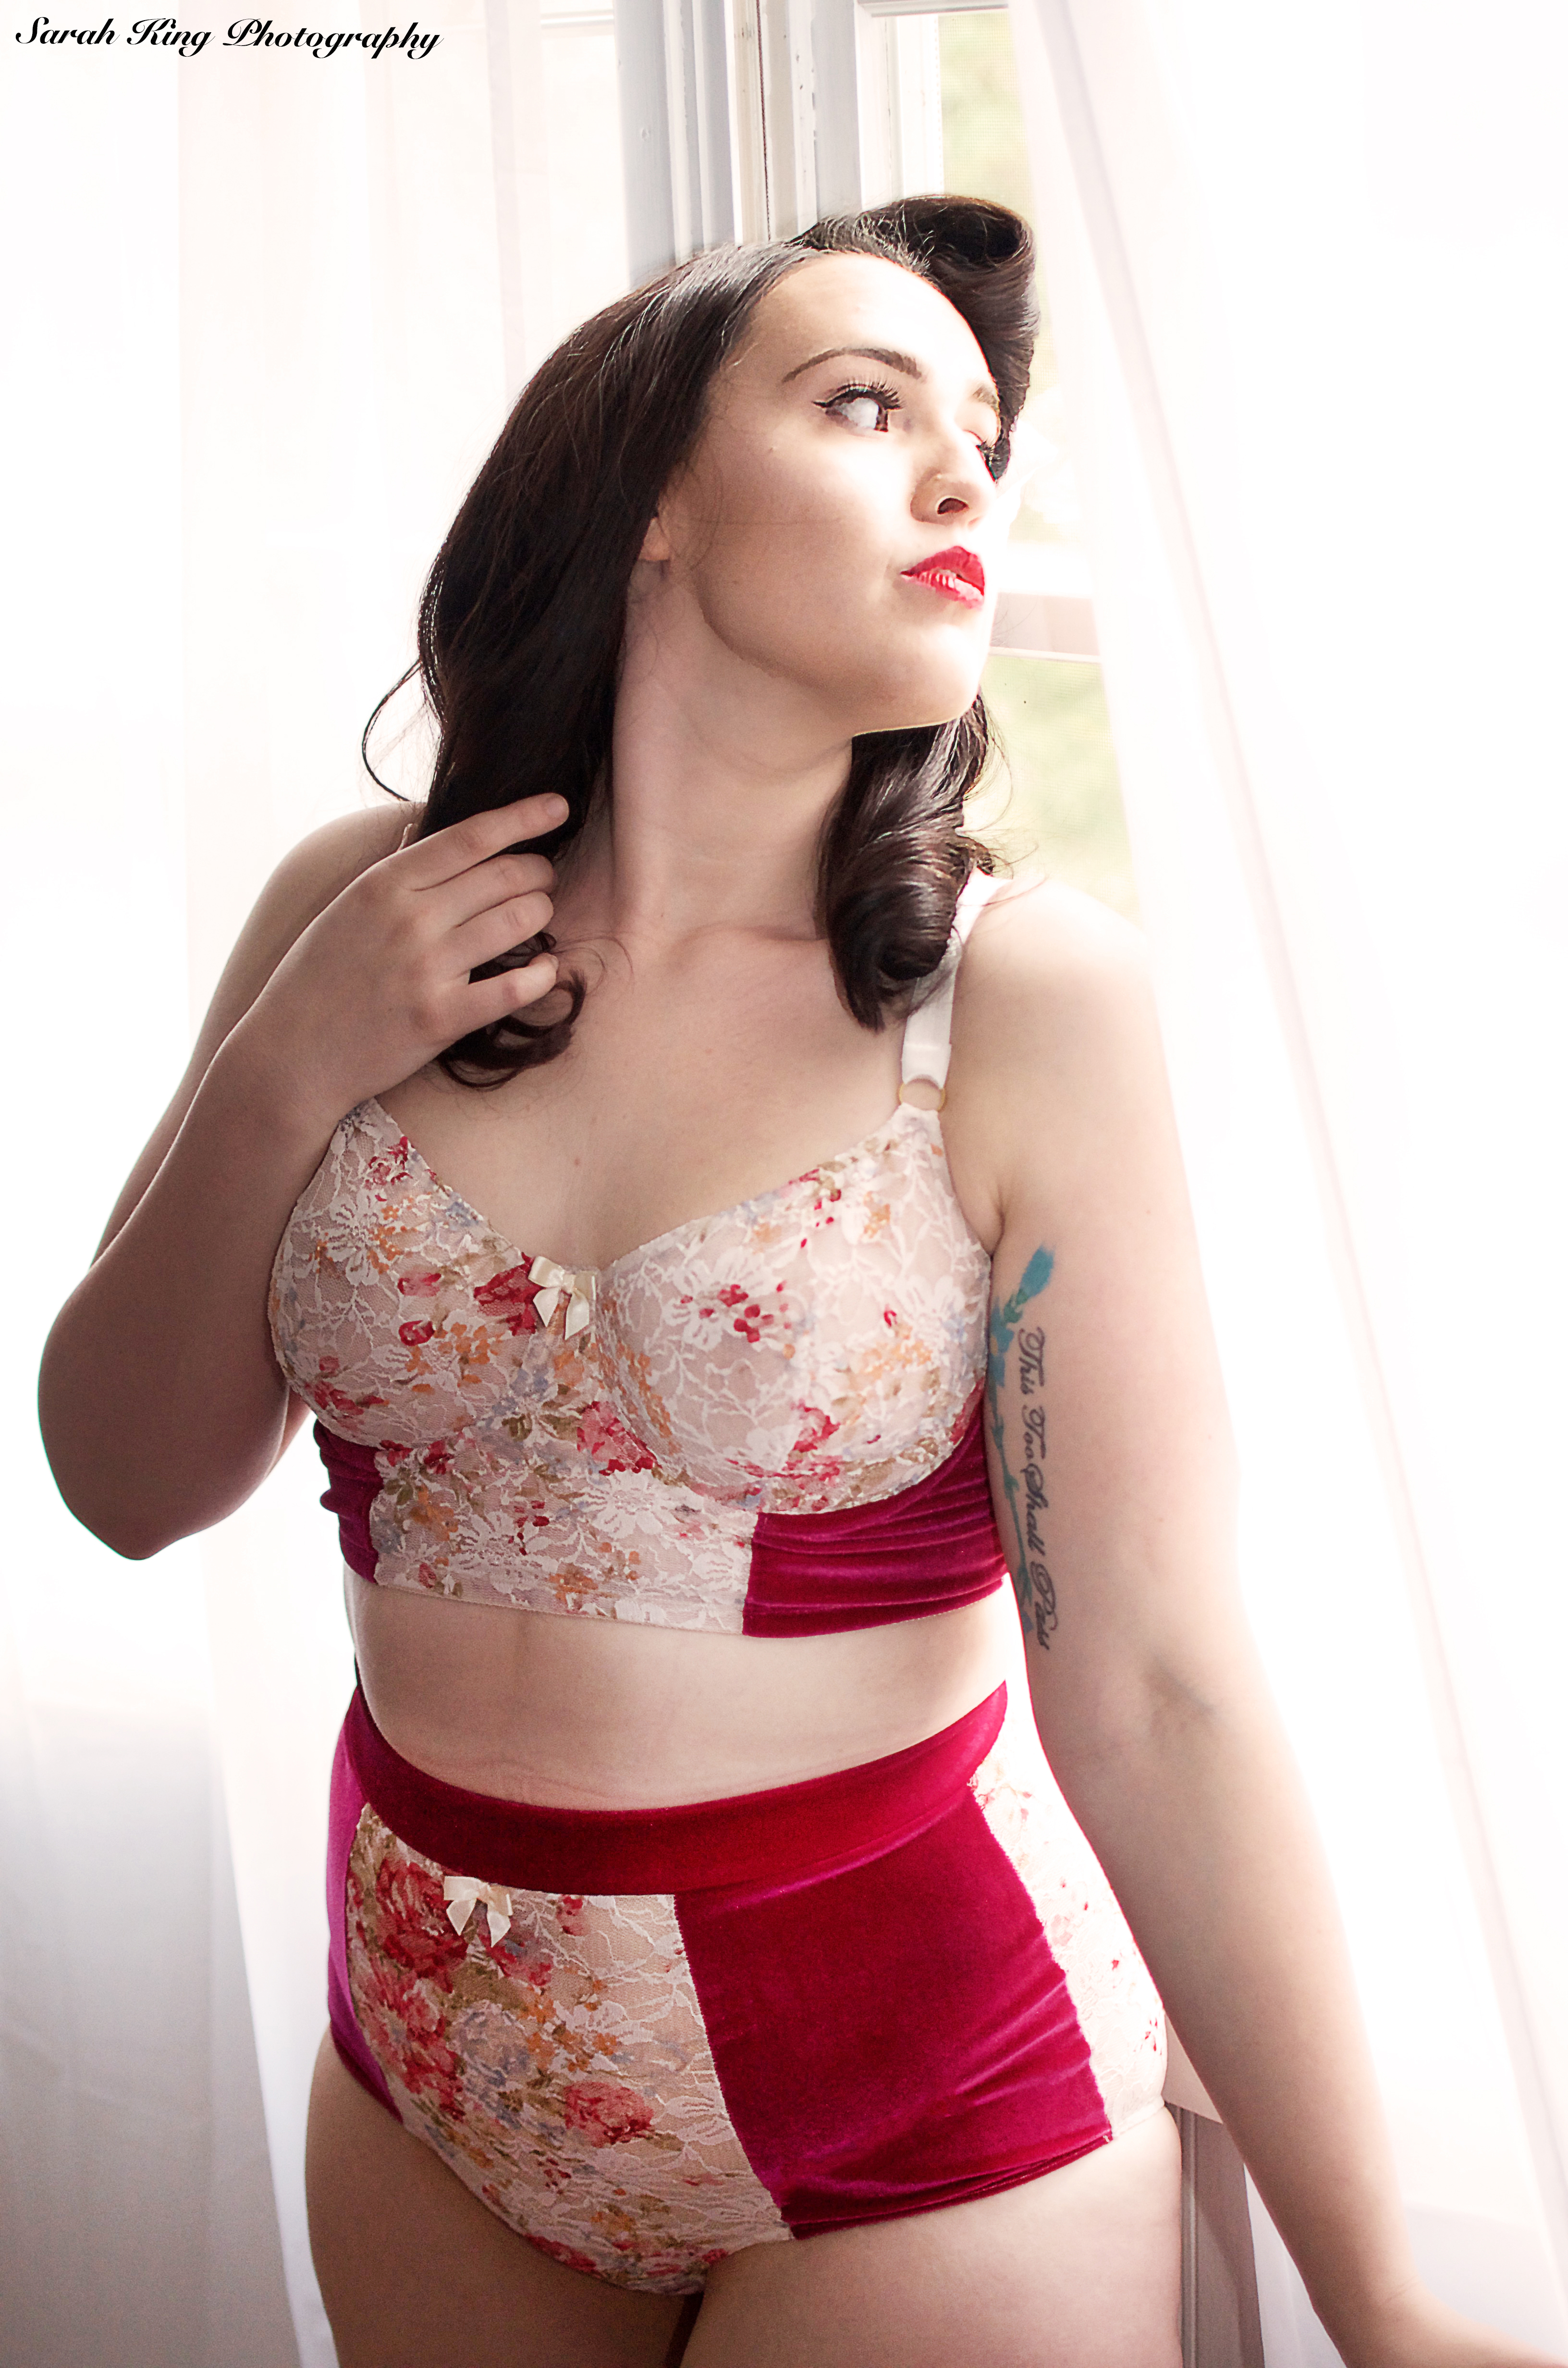 d19ce563fa79a Design (Your Own) Perfection: Lingerie by Impish Lee – Warning:Curves Ahead